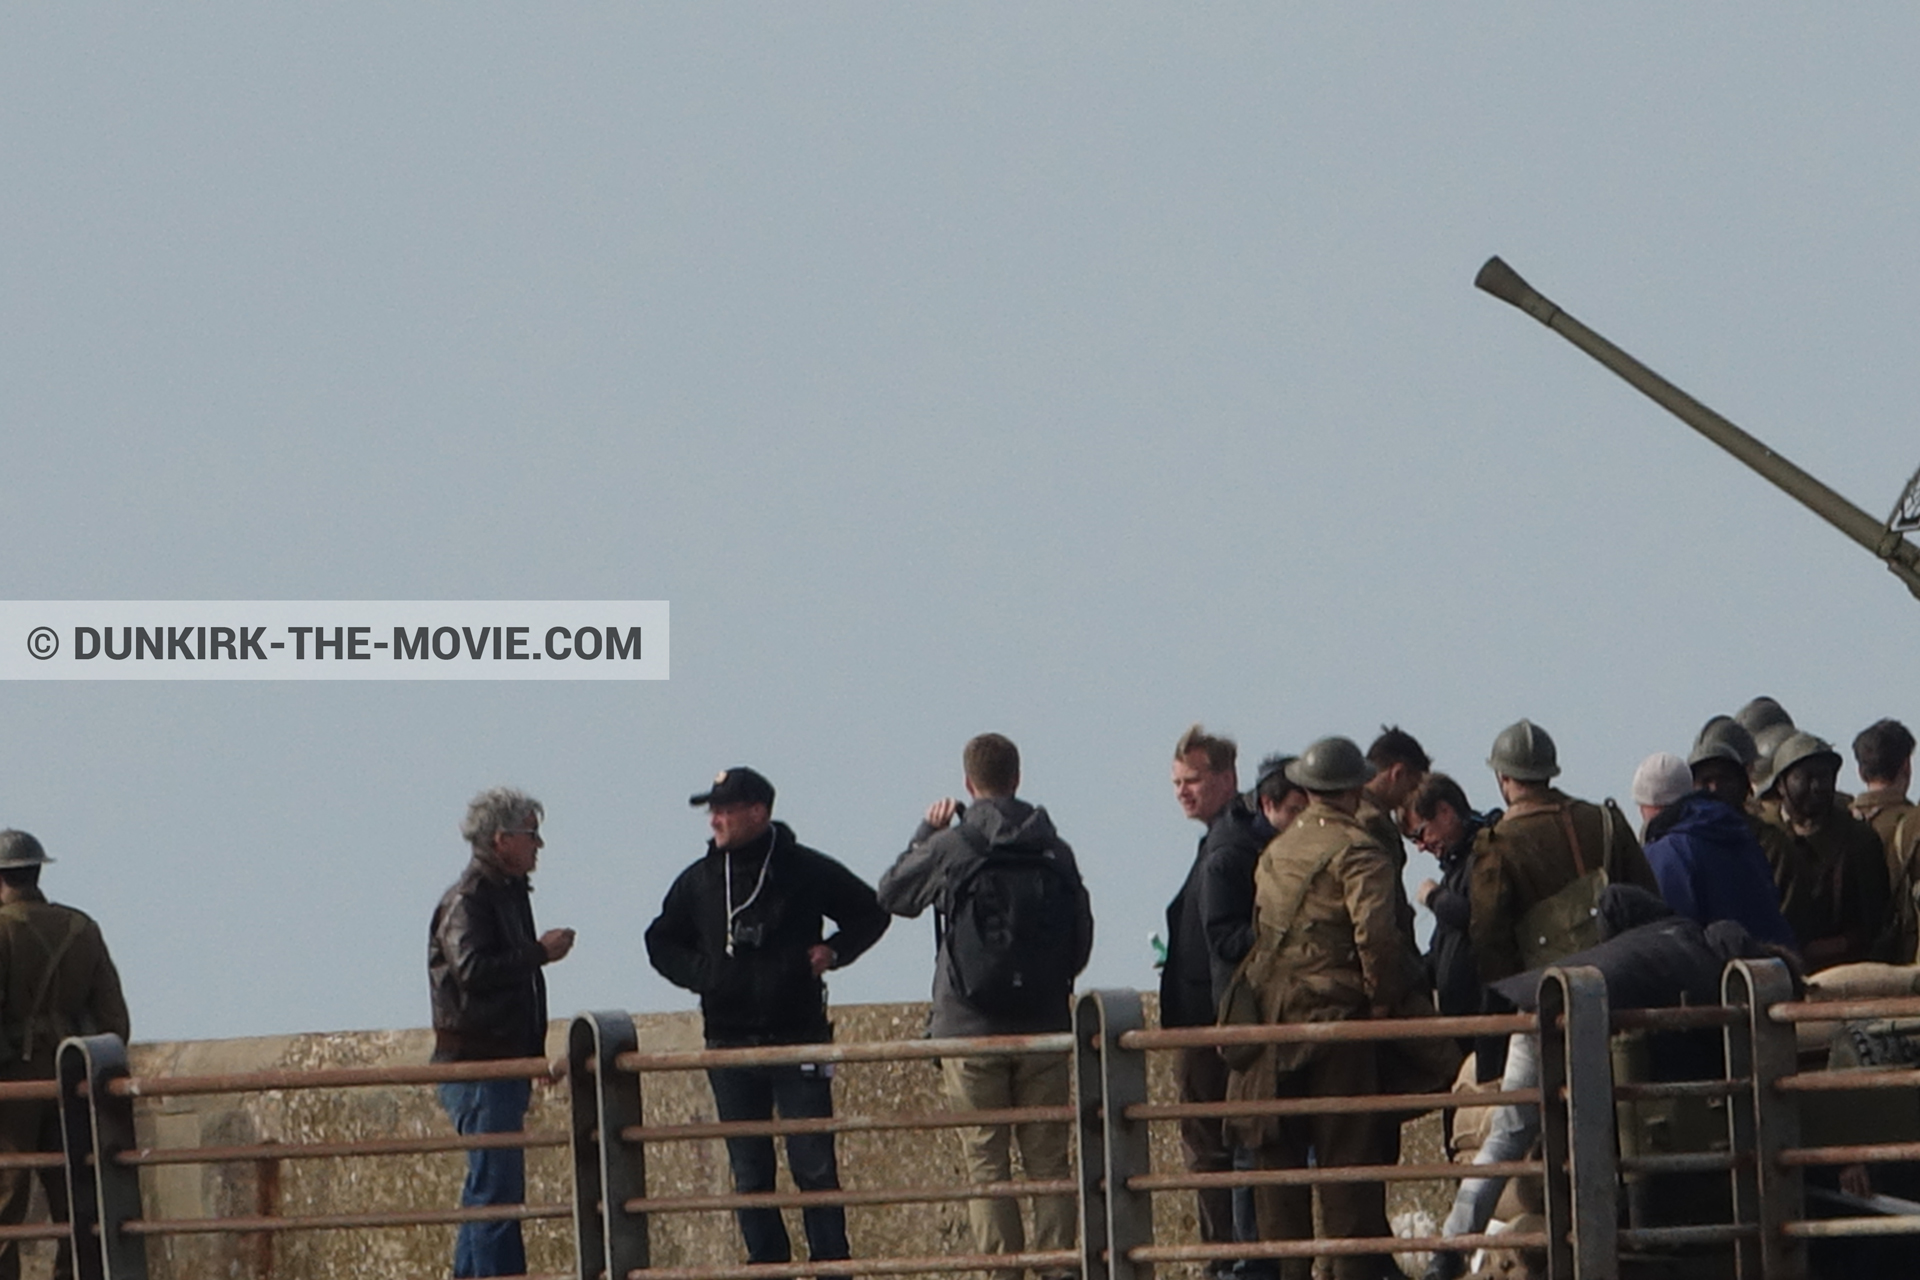 Picture with cannon, supernumeraries, EST pier, Christopher Nolan, Nilo Otero,  from behind the scene of the Dunkirk movie by Nolan